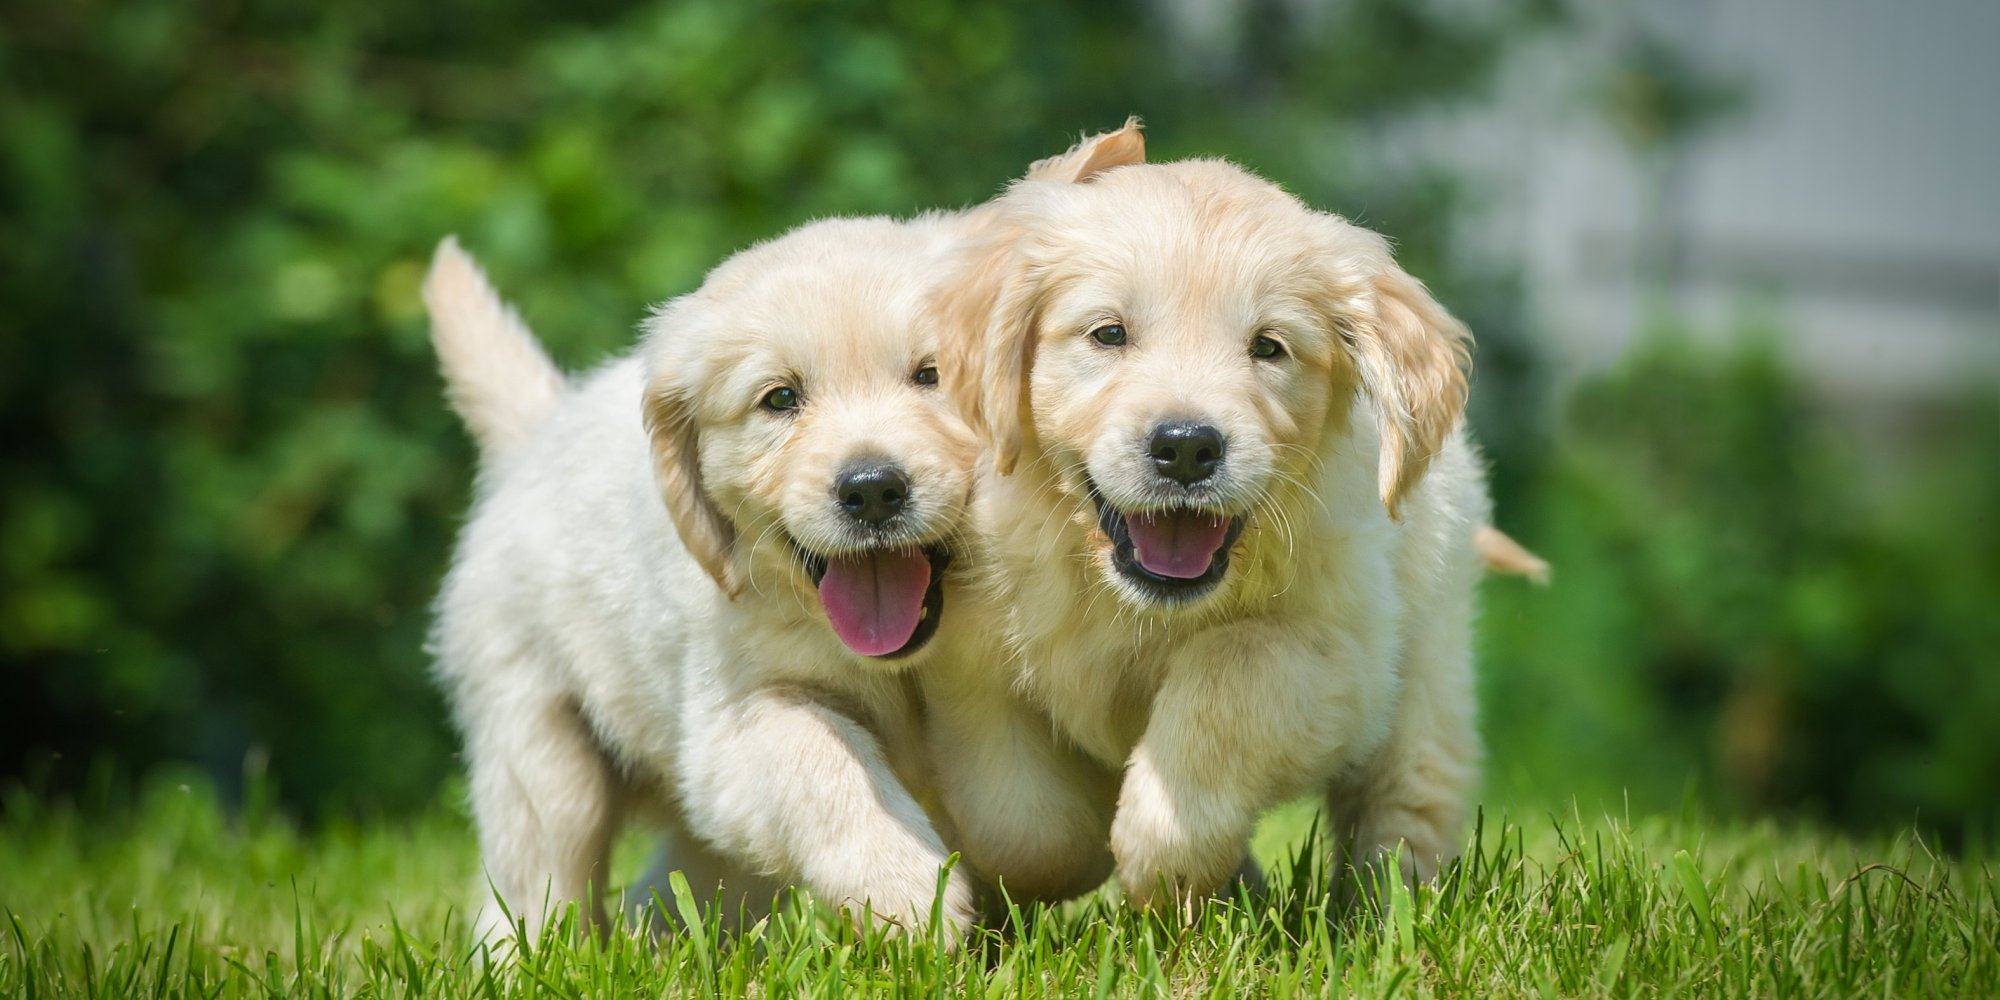 puppies animals animal happy smiling dogs golden retriever happiest earth puppy pet together pup running backgrounds happiness vet pups wallpapers